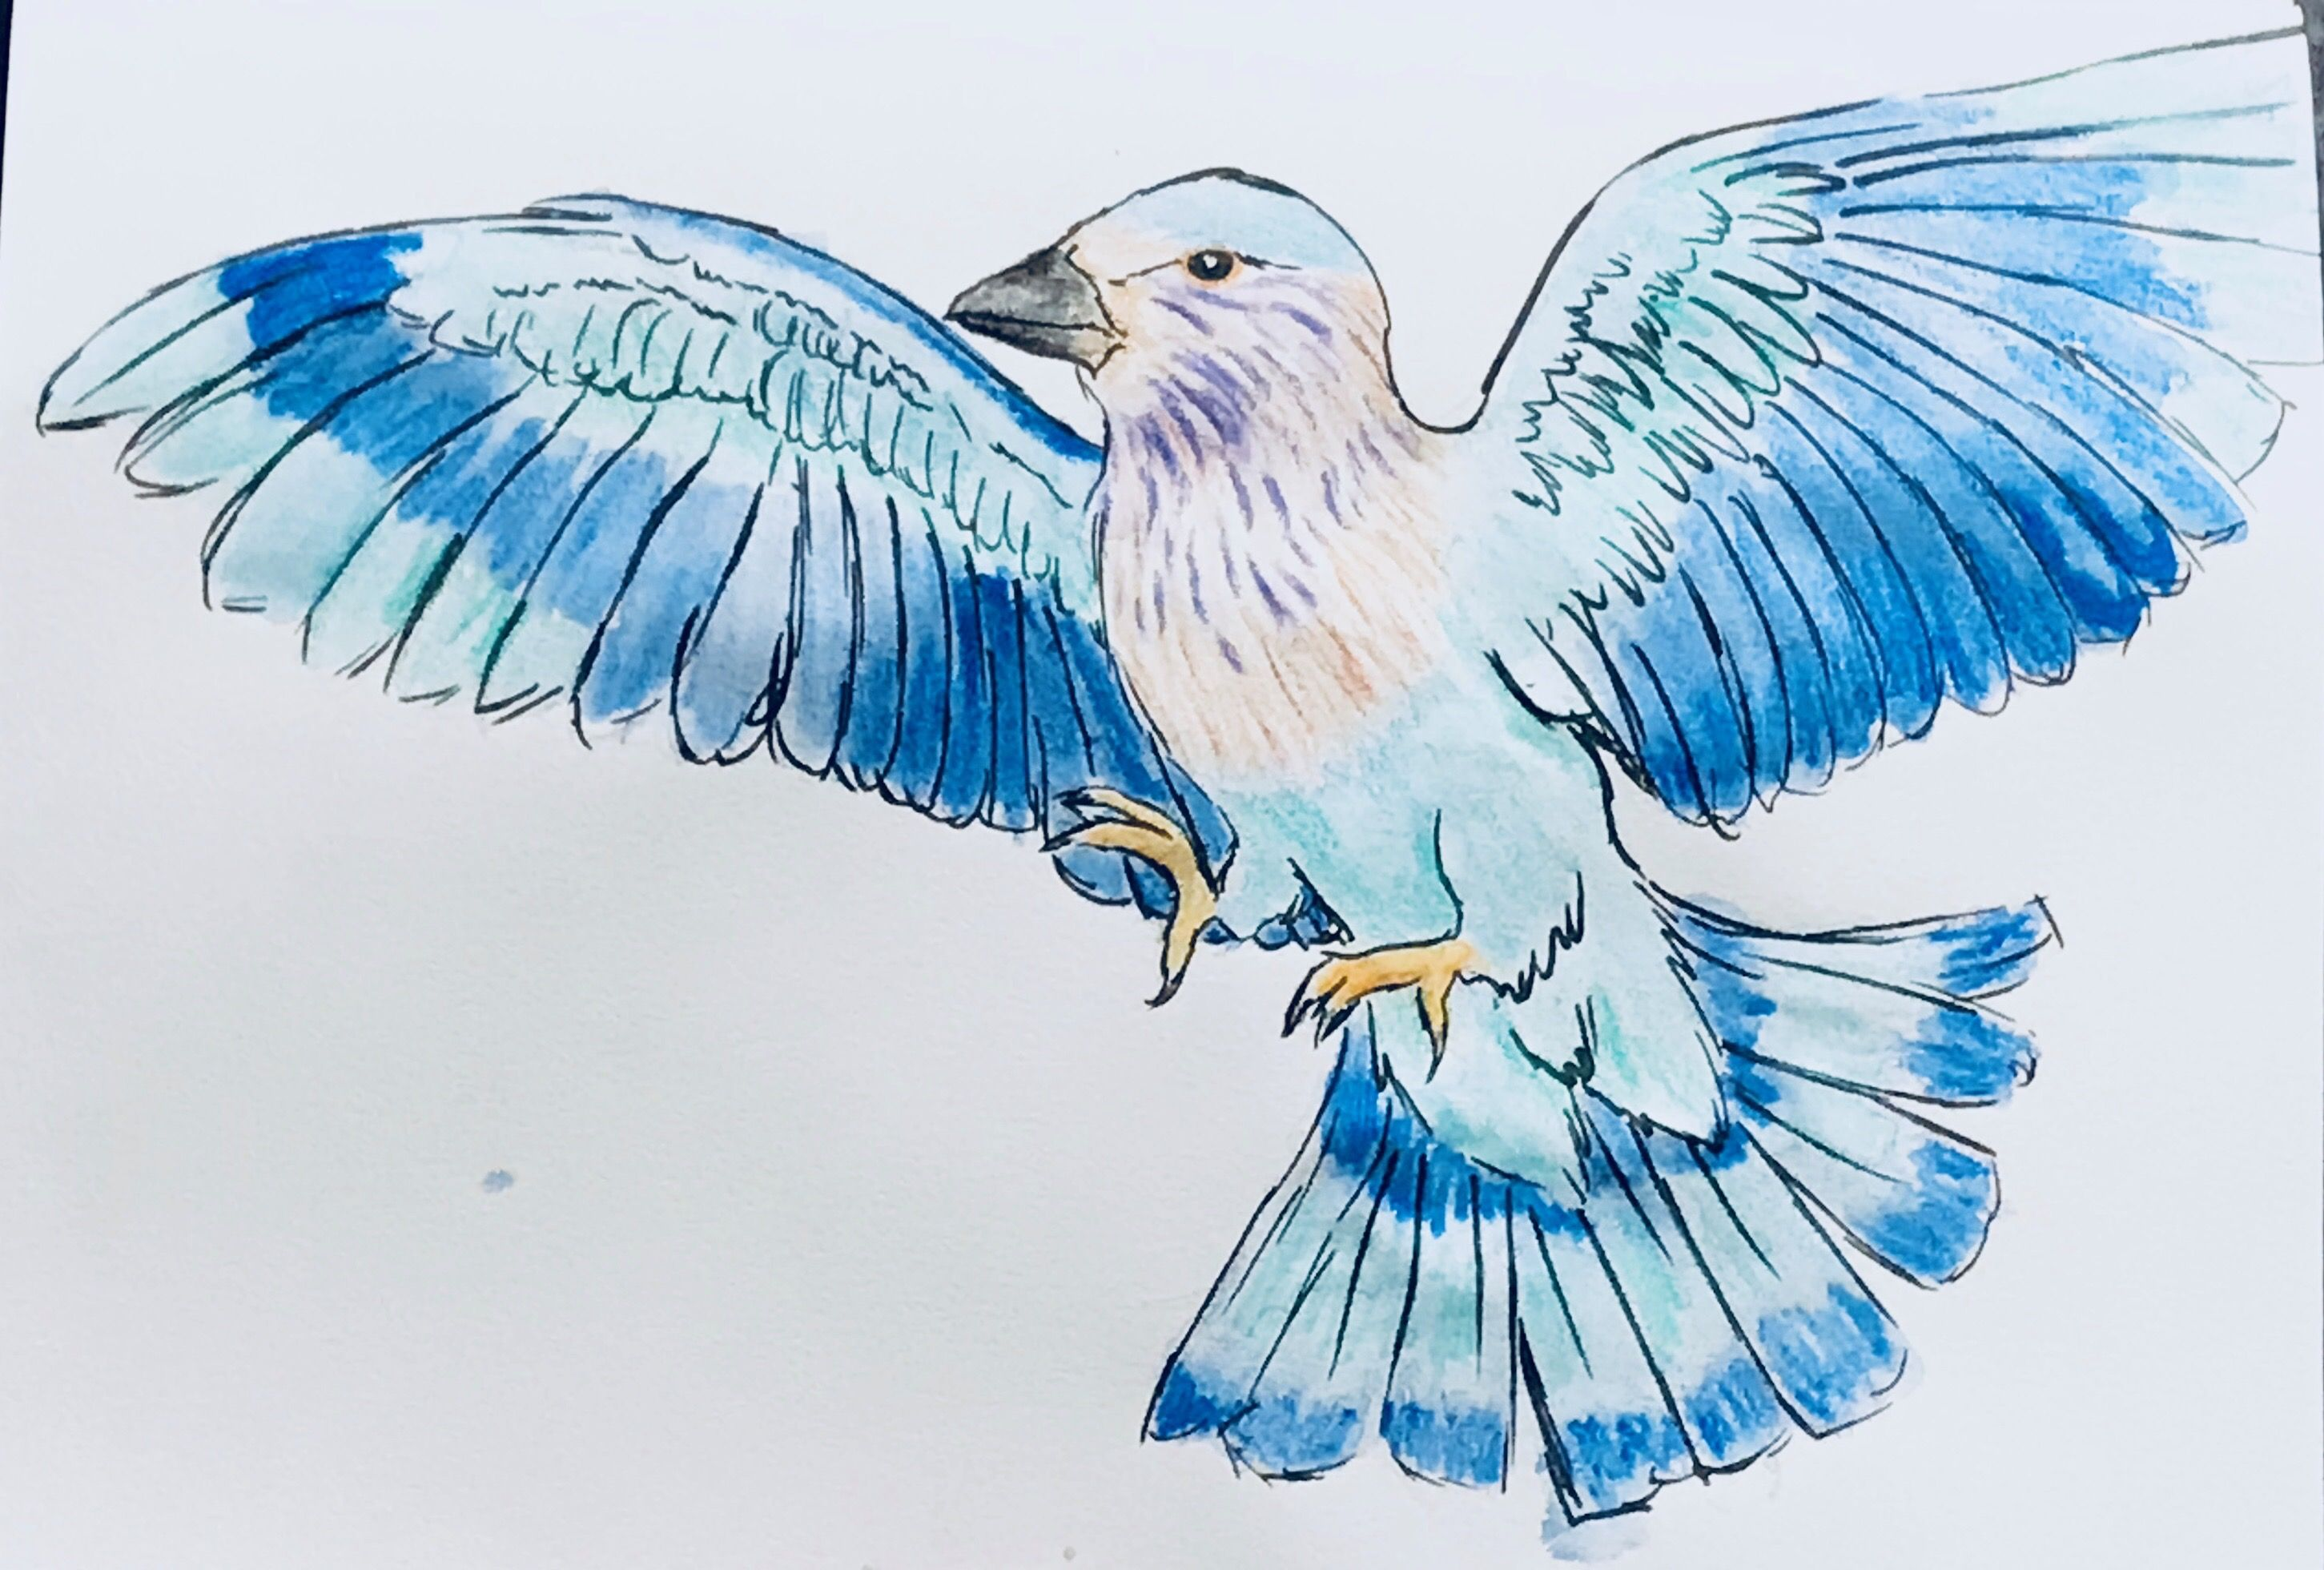 An Indian Roller. #mightcoulddrawtoday #birds #watercolor #drawing ...